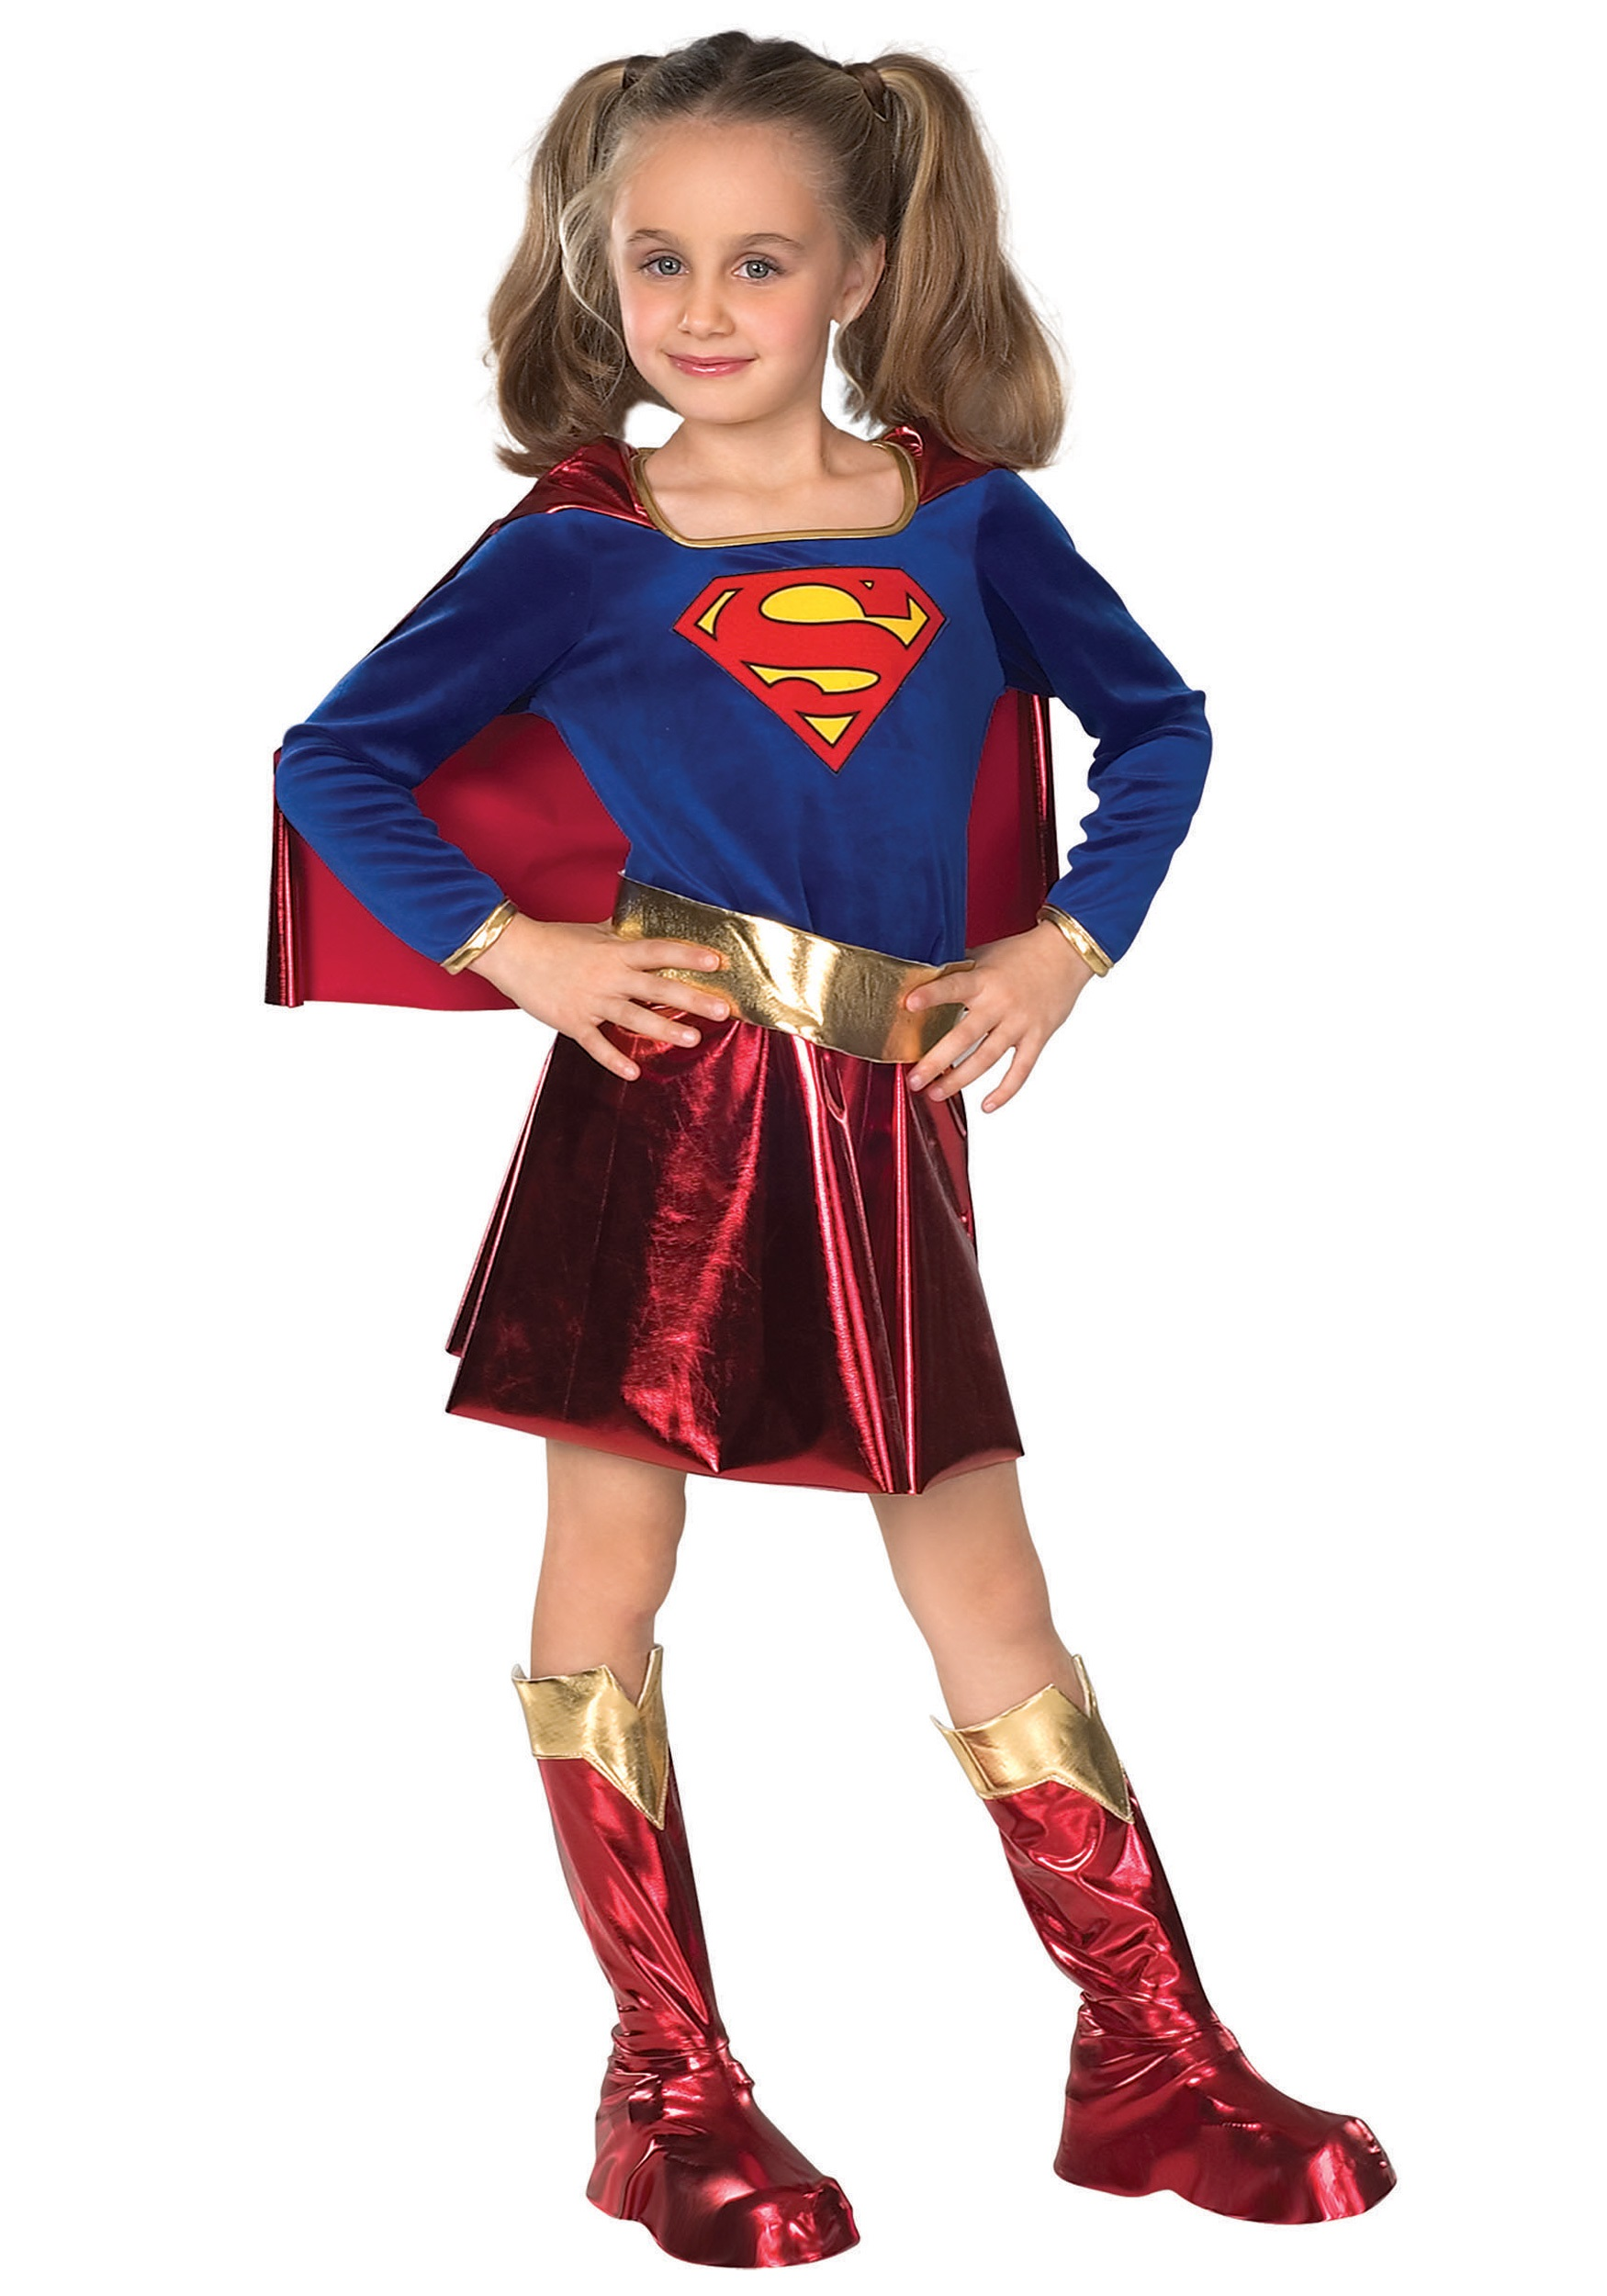 Kids Supergirl Costume  sc 1 st  Halloween Costumes UK & Girls Superhero Costumes - Child Teen Girls Superhero Costumes